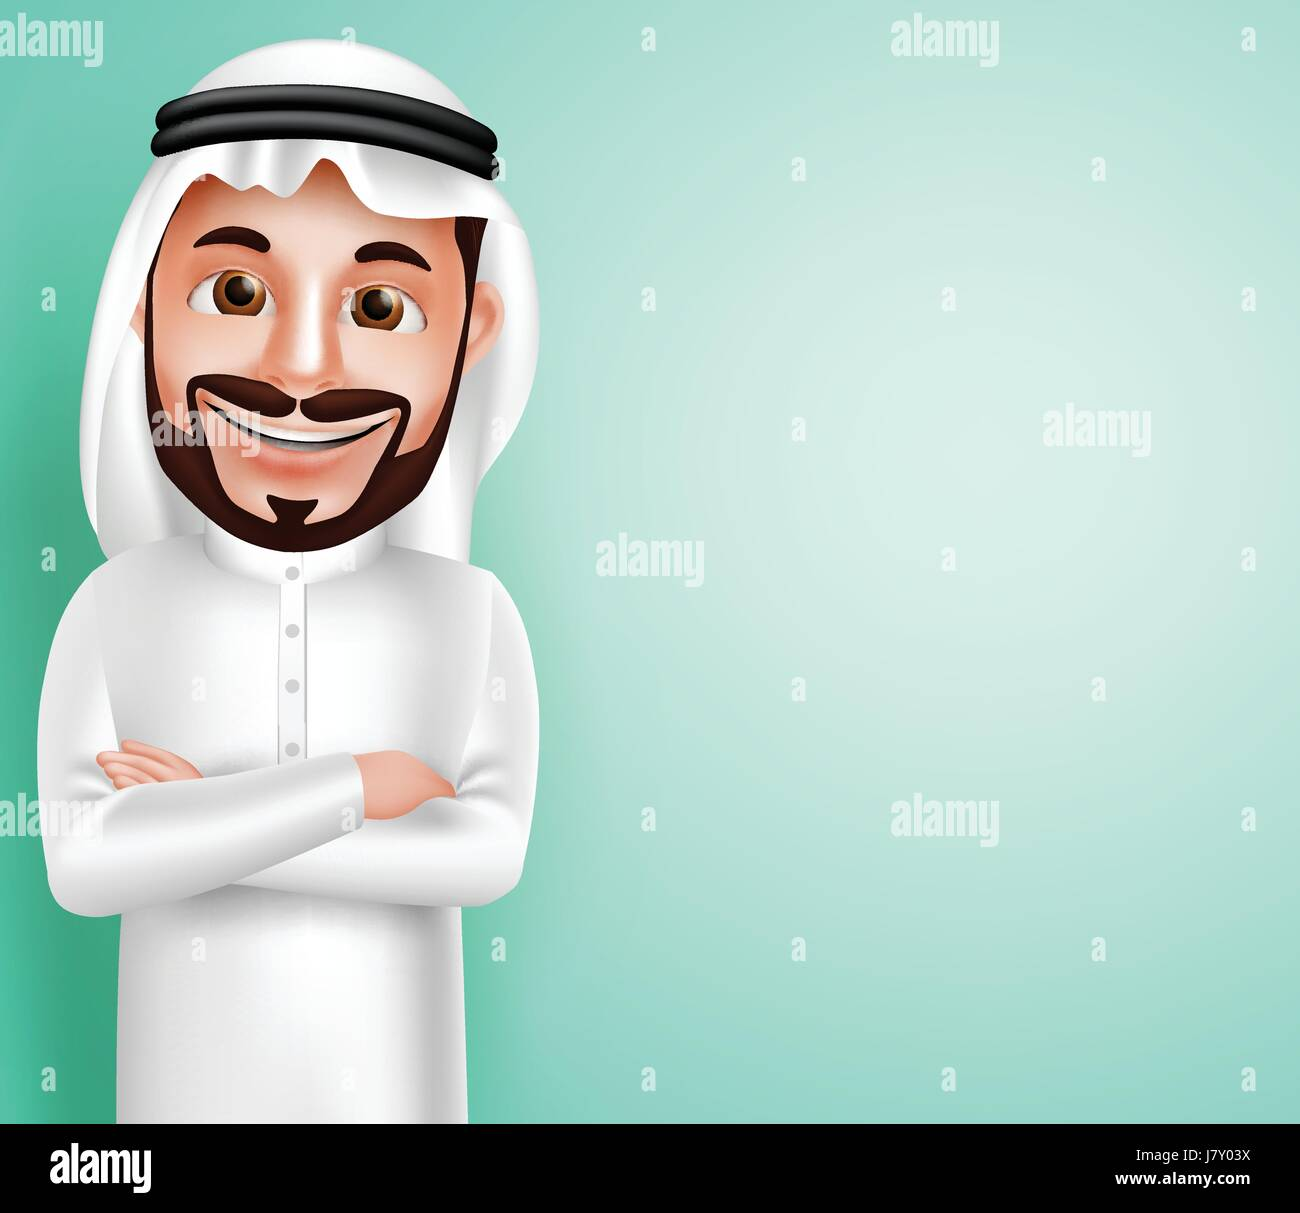 Saudi Arab man vector character wearing thobe happy posing with blank space in the background for text contents. - Stock Image